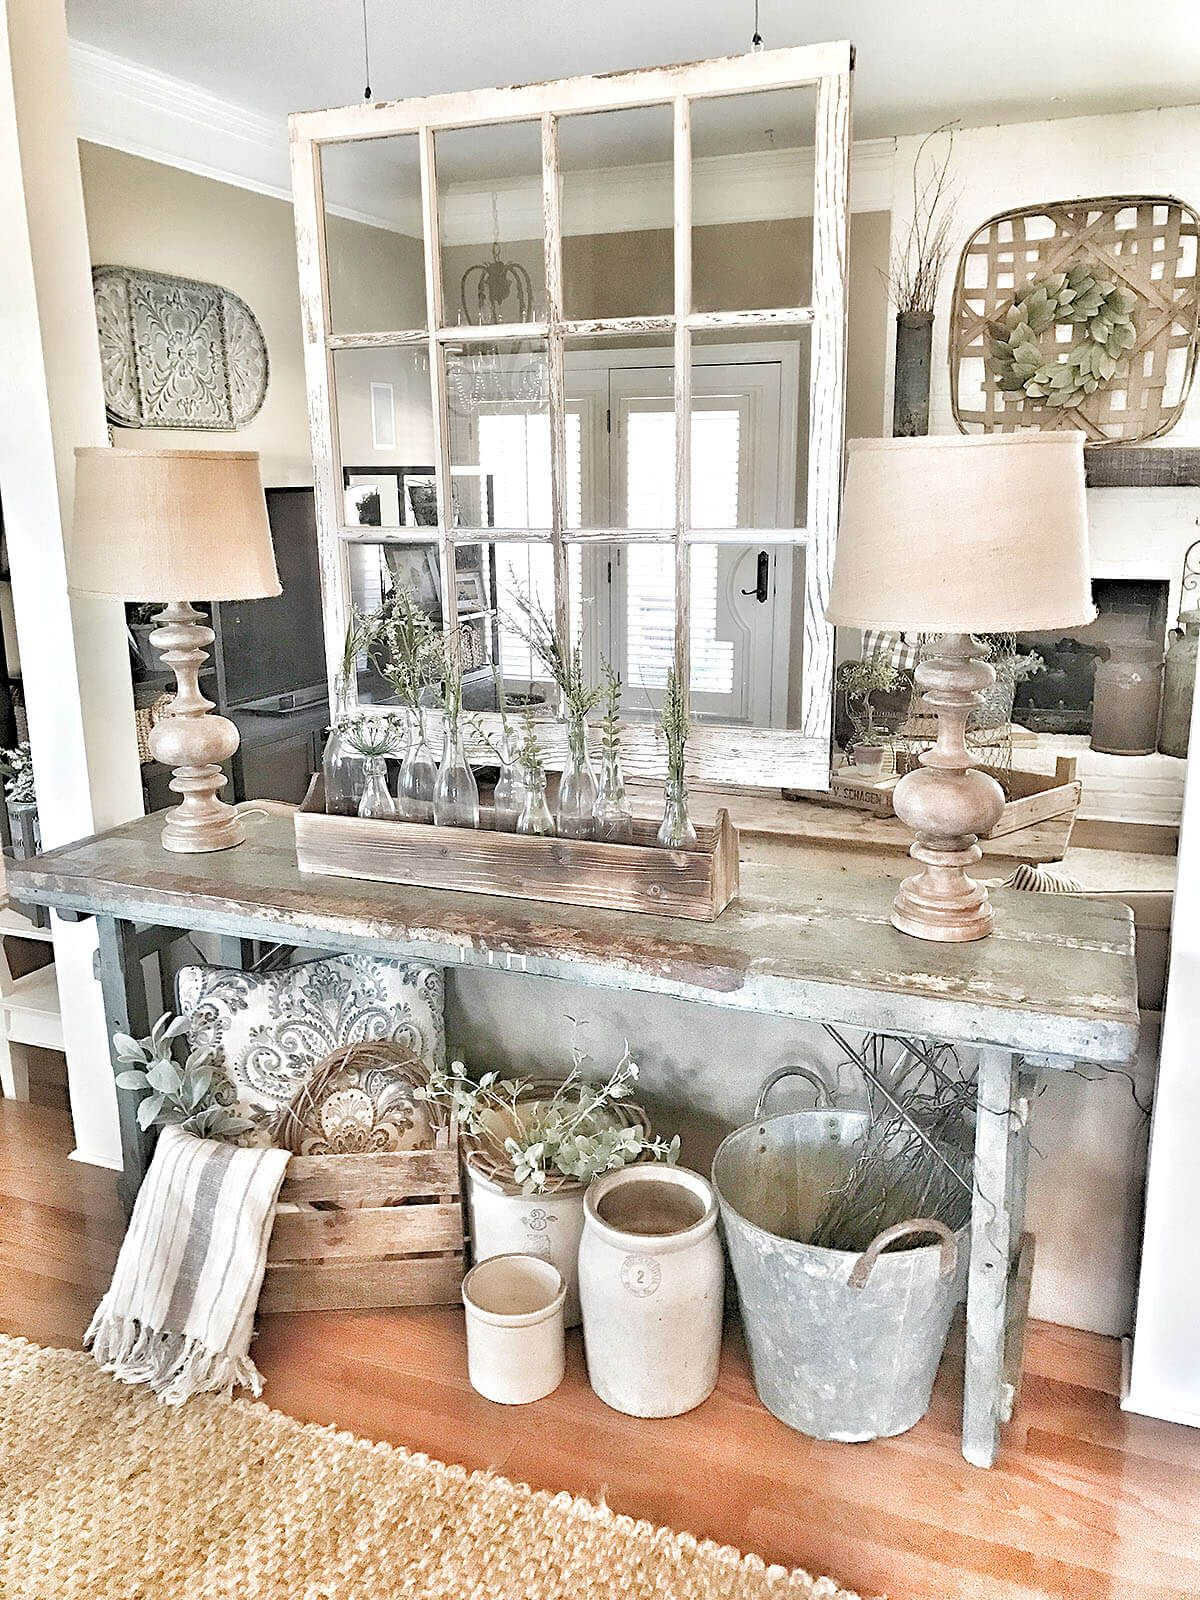 Cozy rustic farmhouse winter decor ideas pinterest black friday shopping and cyber monday also rh